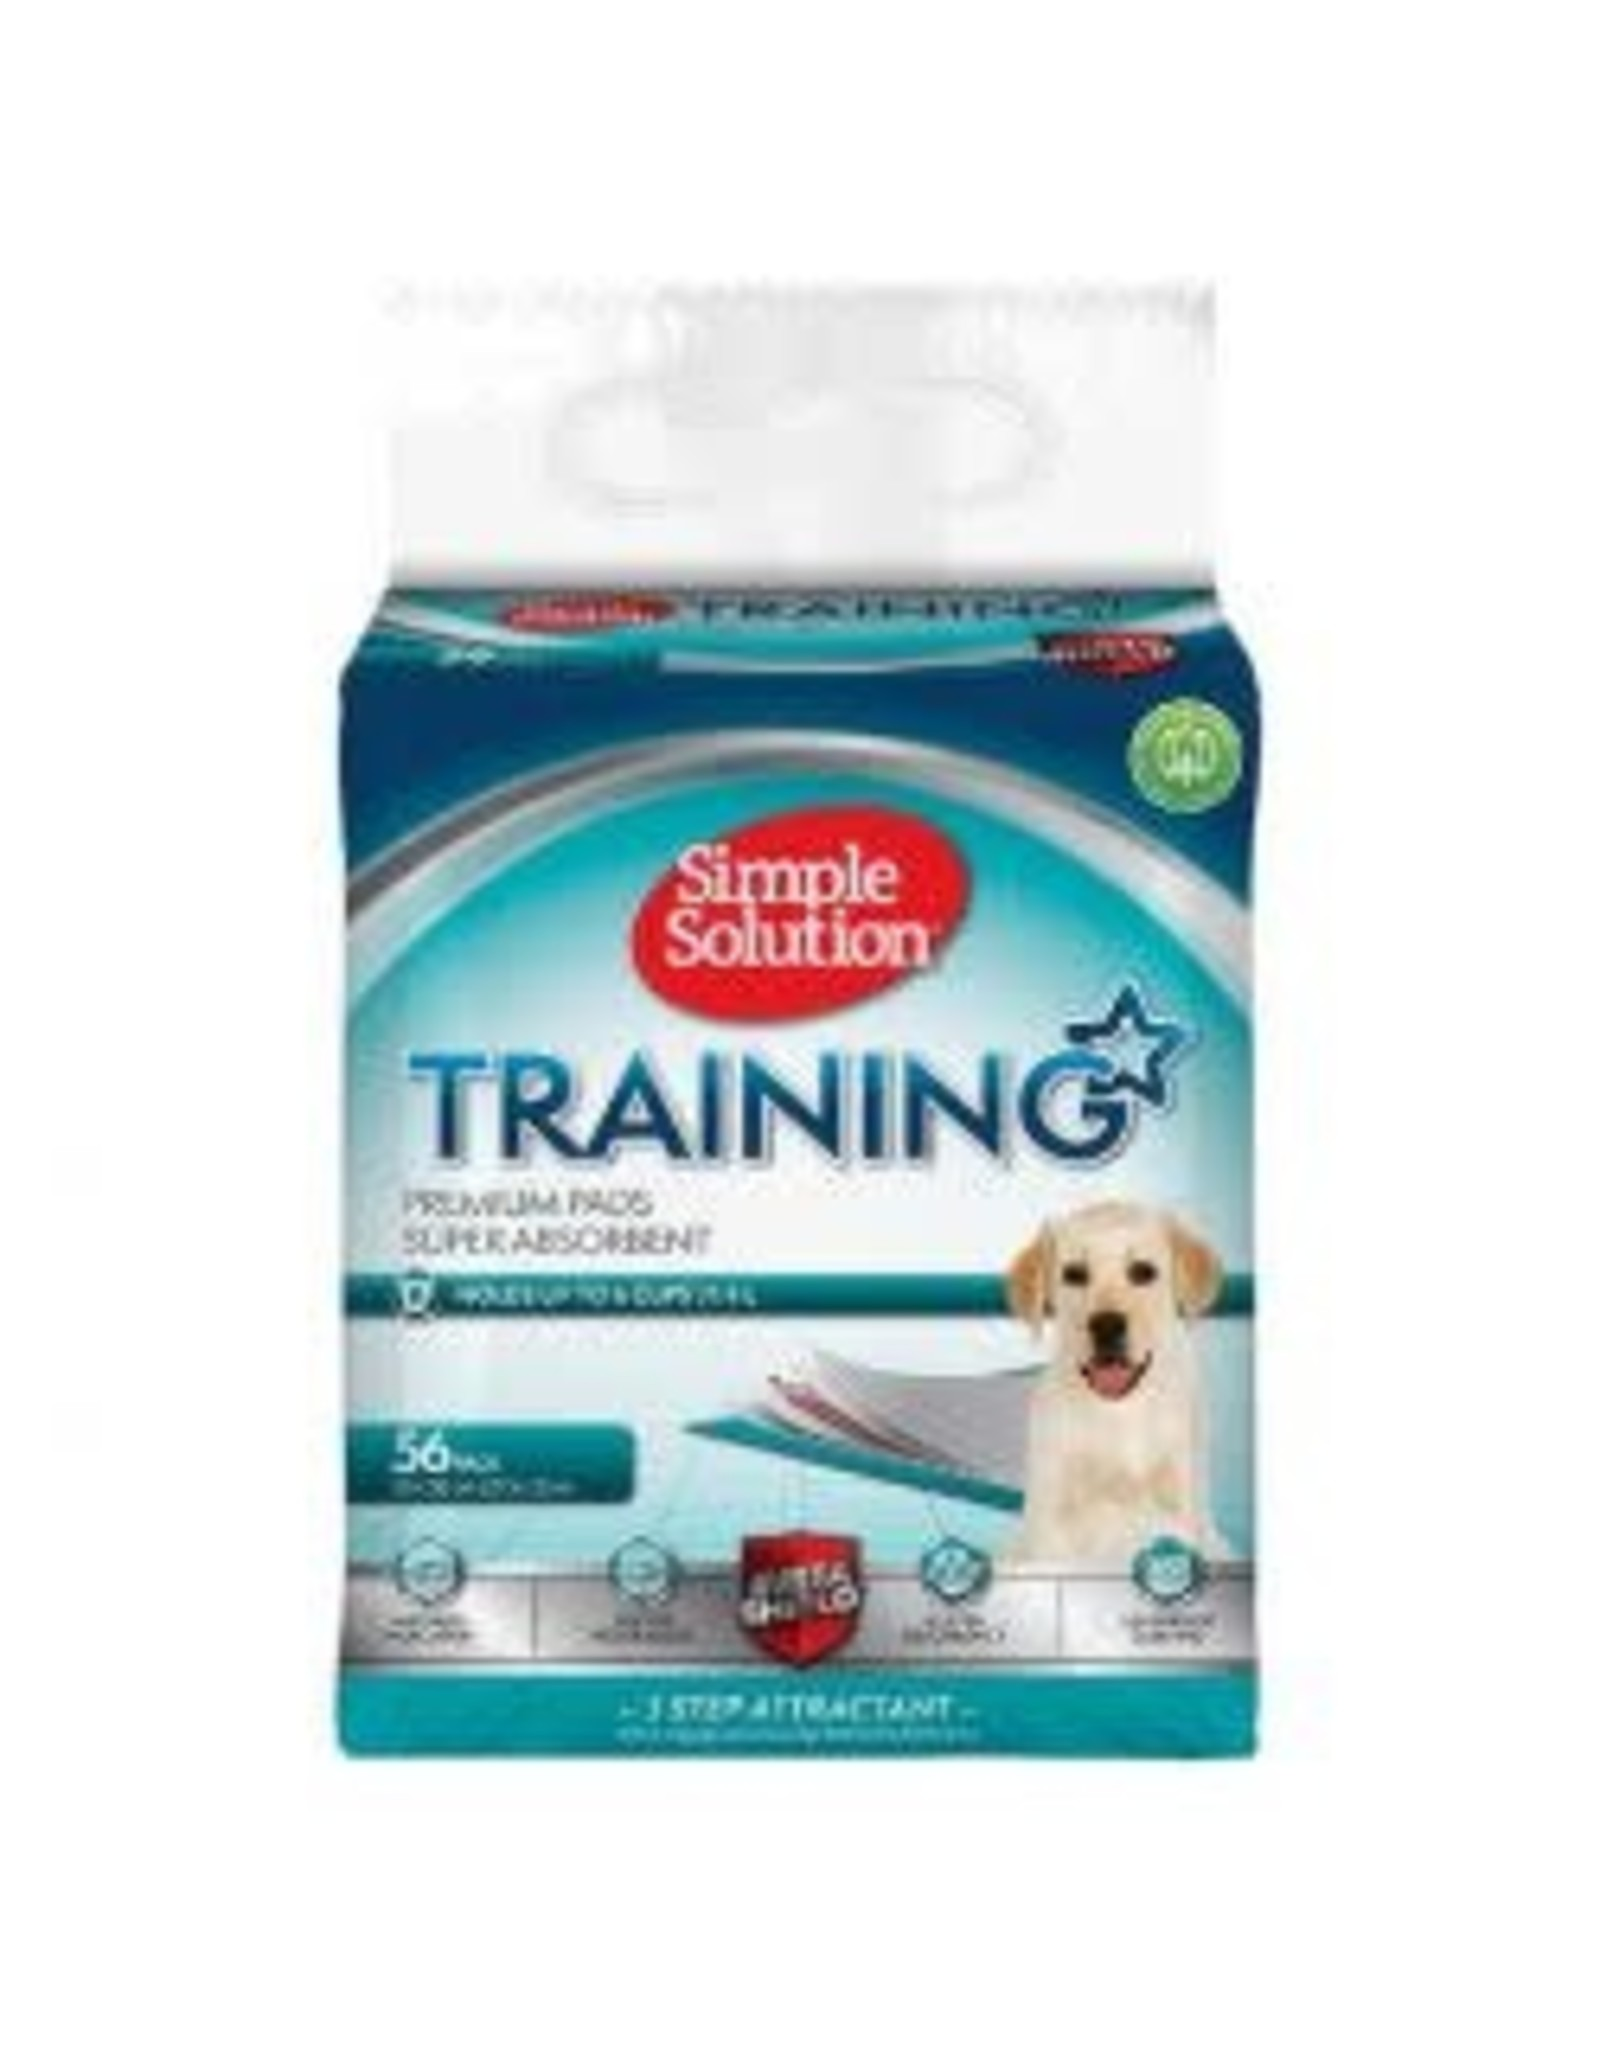 Simple Solutions SS Puppy Training Pads 56 Pack